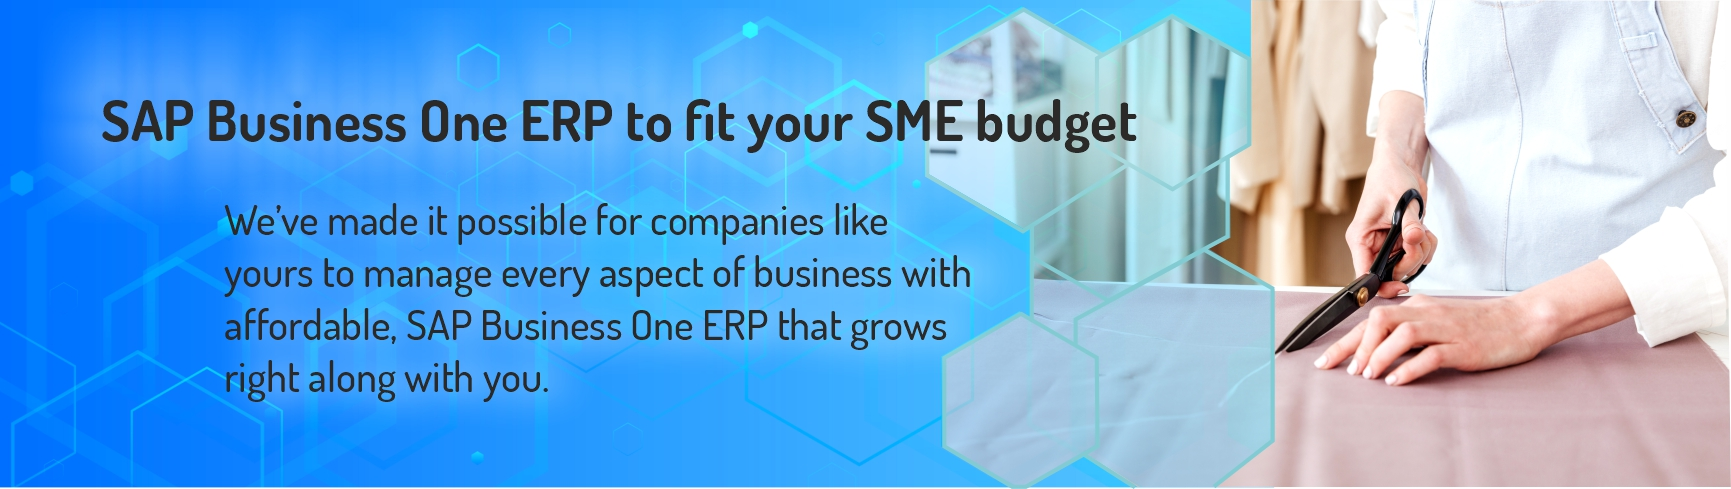 One ERP to fit your SME budget